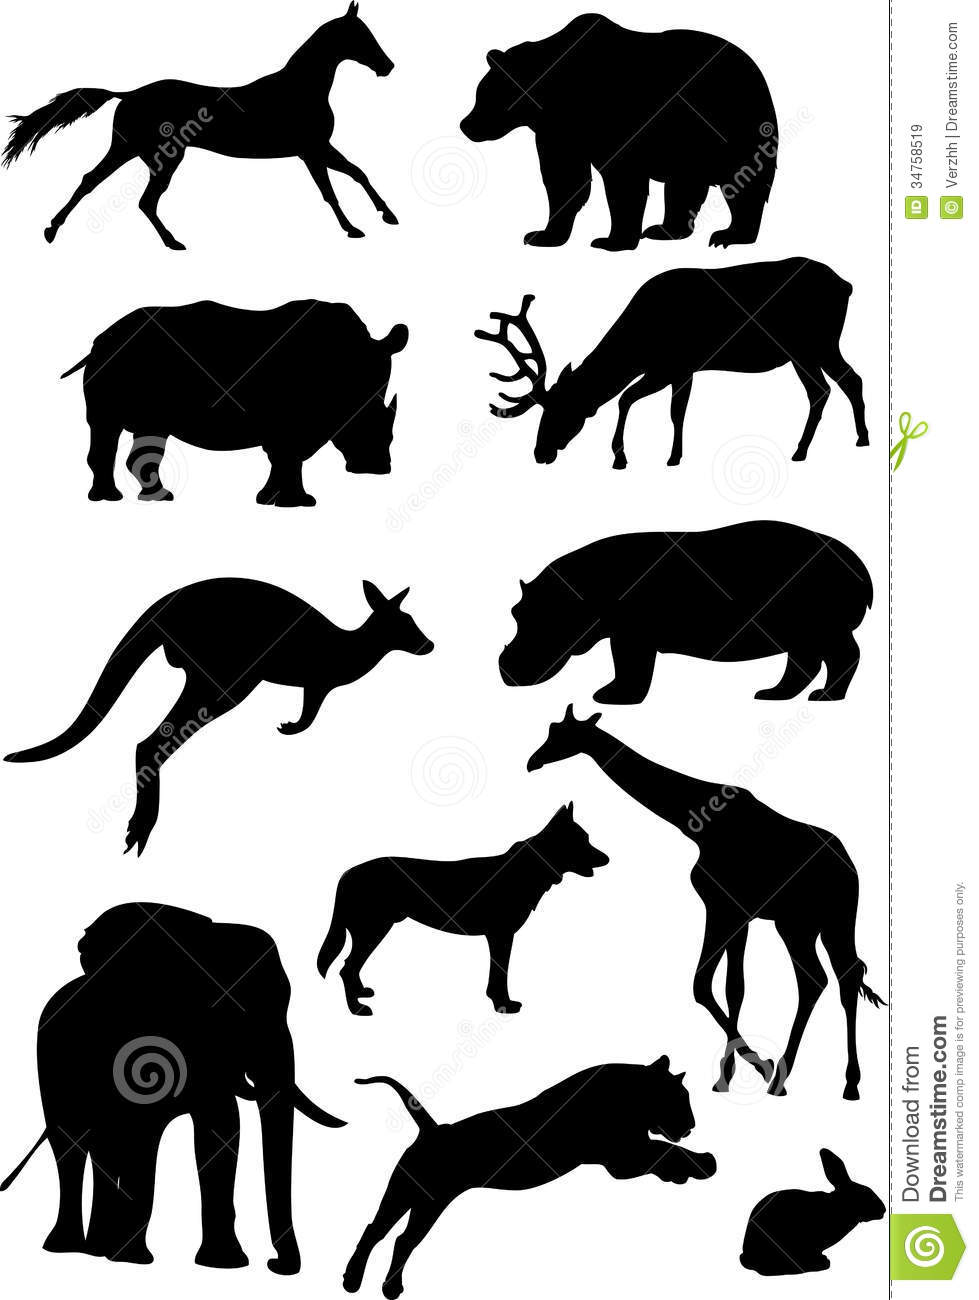 Silhouettes of mammal stock vector. Image of illustrations ... Mammals Clipart Black And White